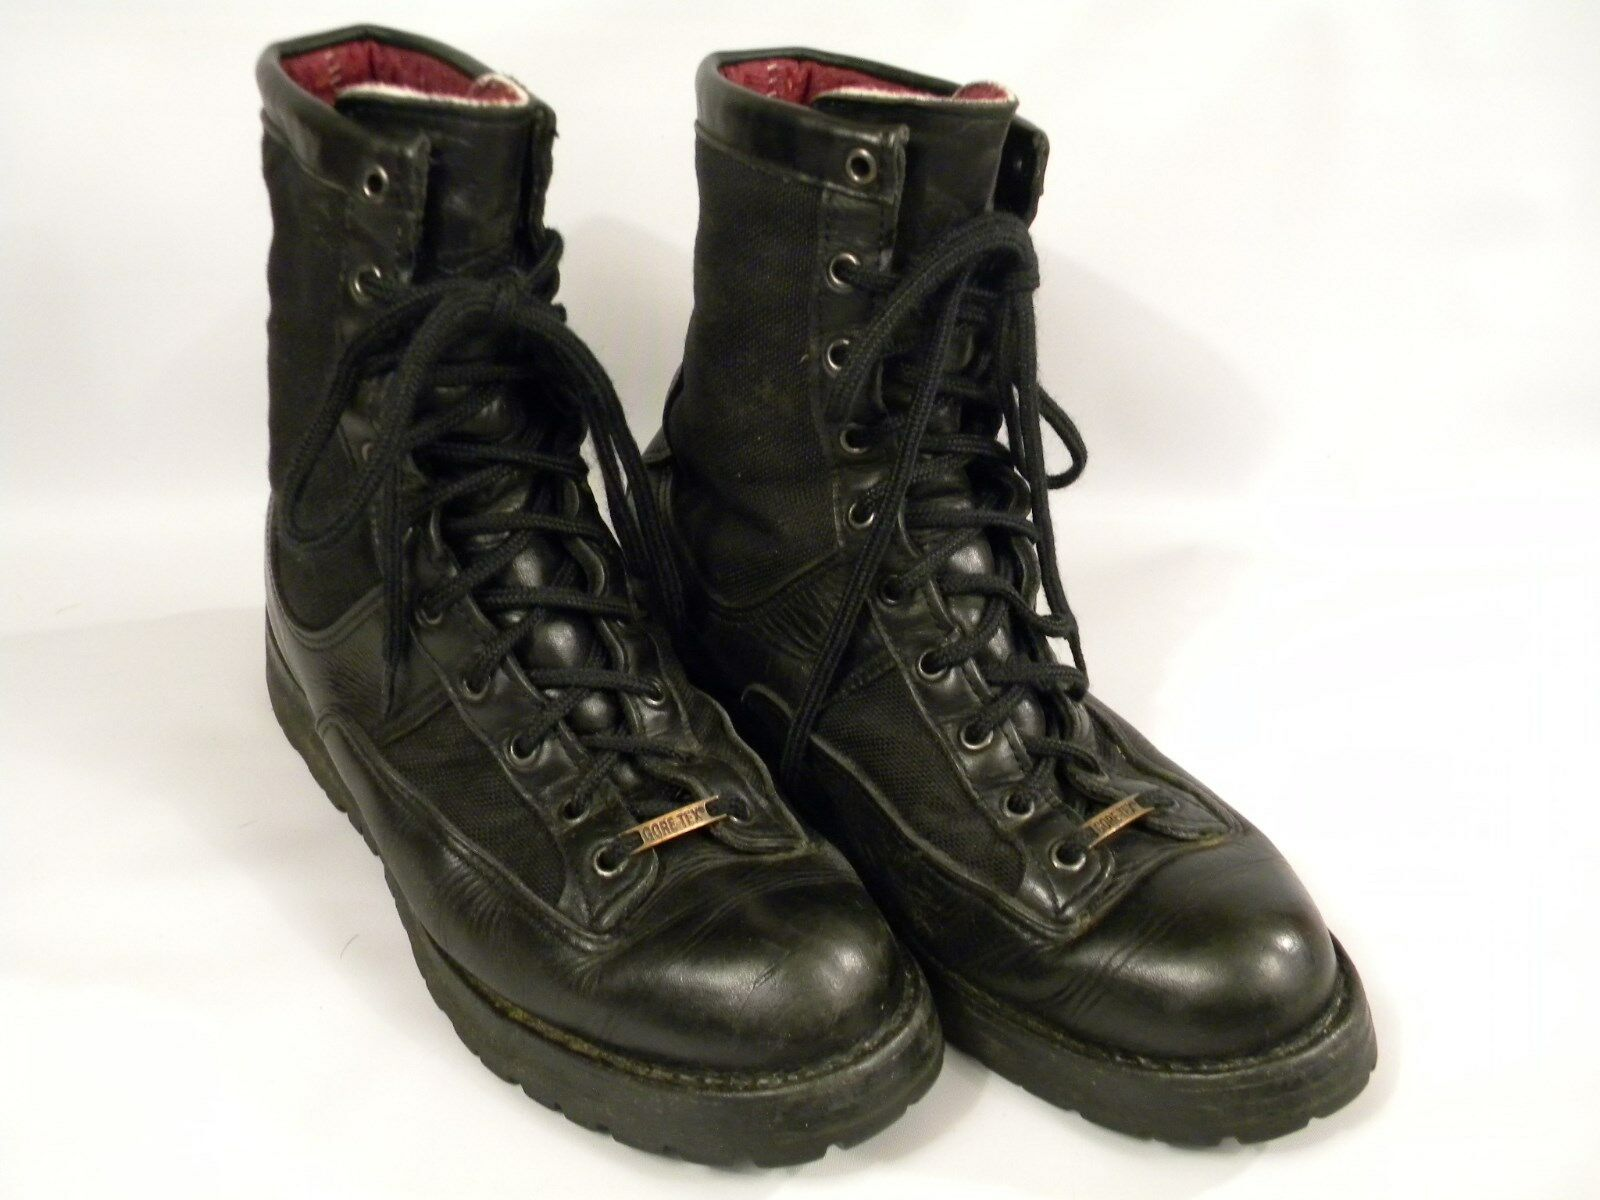 DANNER ACADIA MILITARY POLICE 10D GORE-TEX 200gm POLY INSULATION VIBRAM 523185